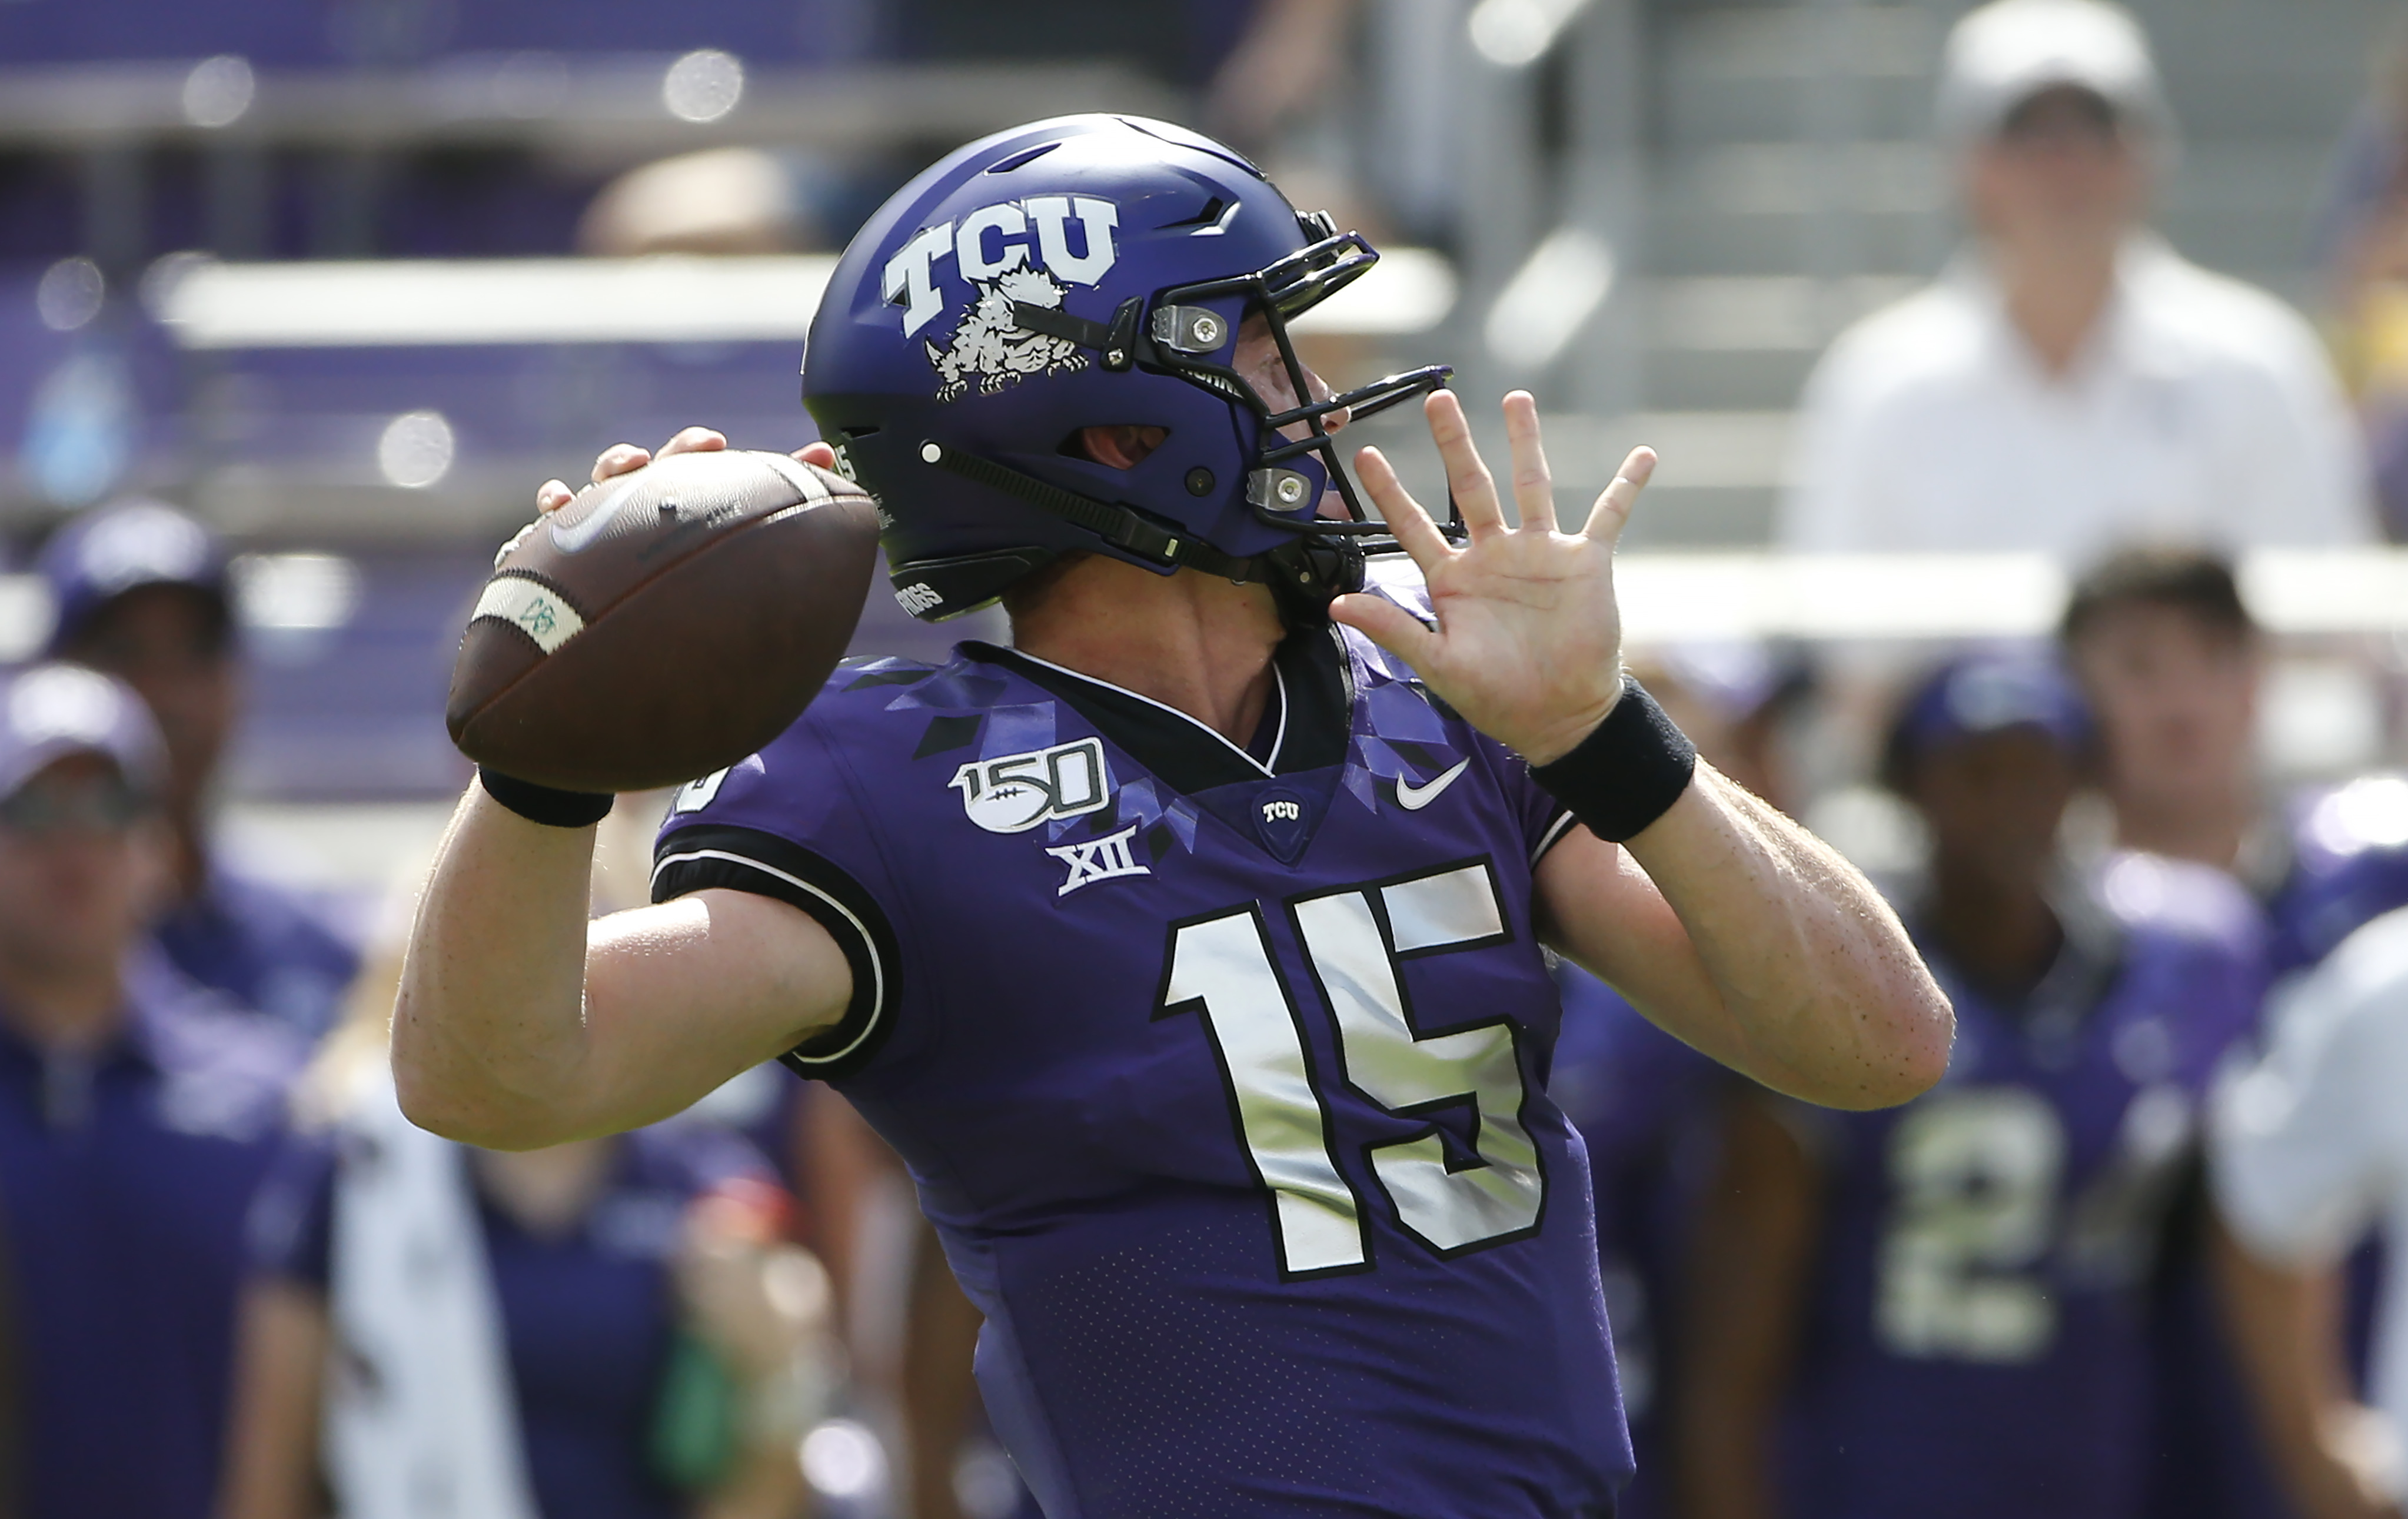 Big 12: TCU takes fresh QB home to face Iowa State